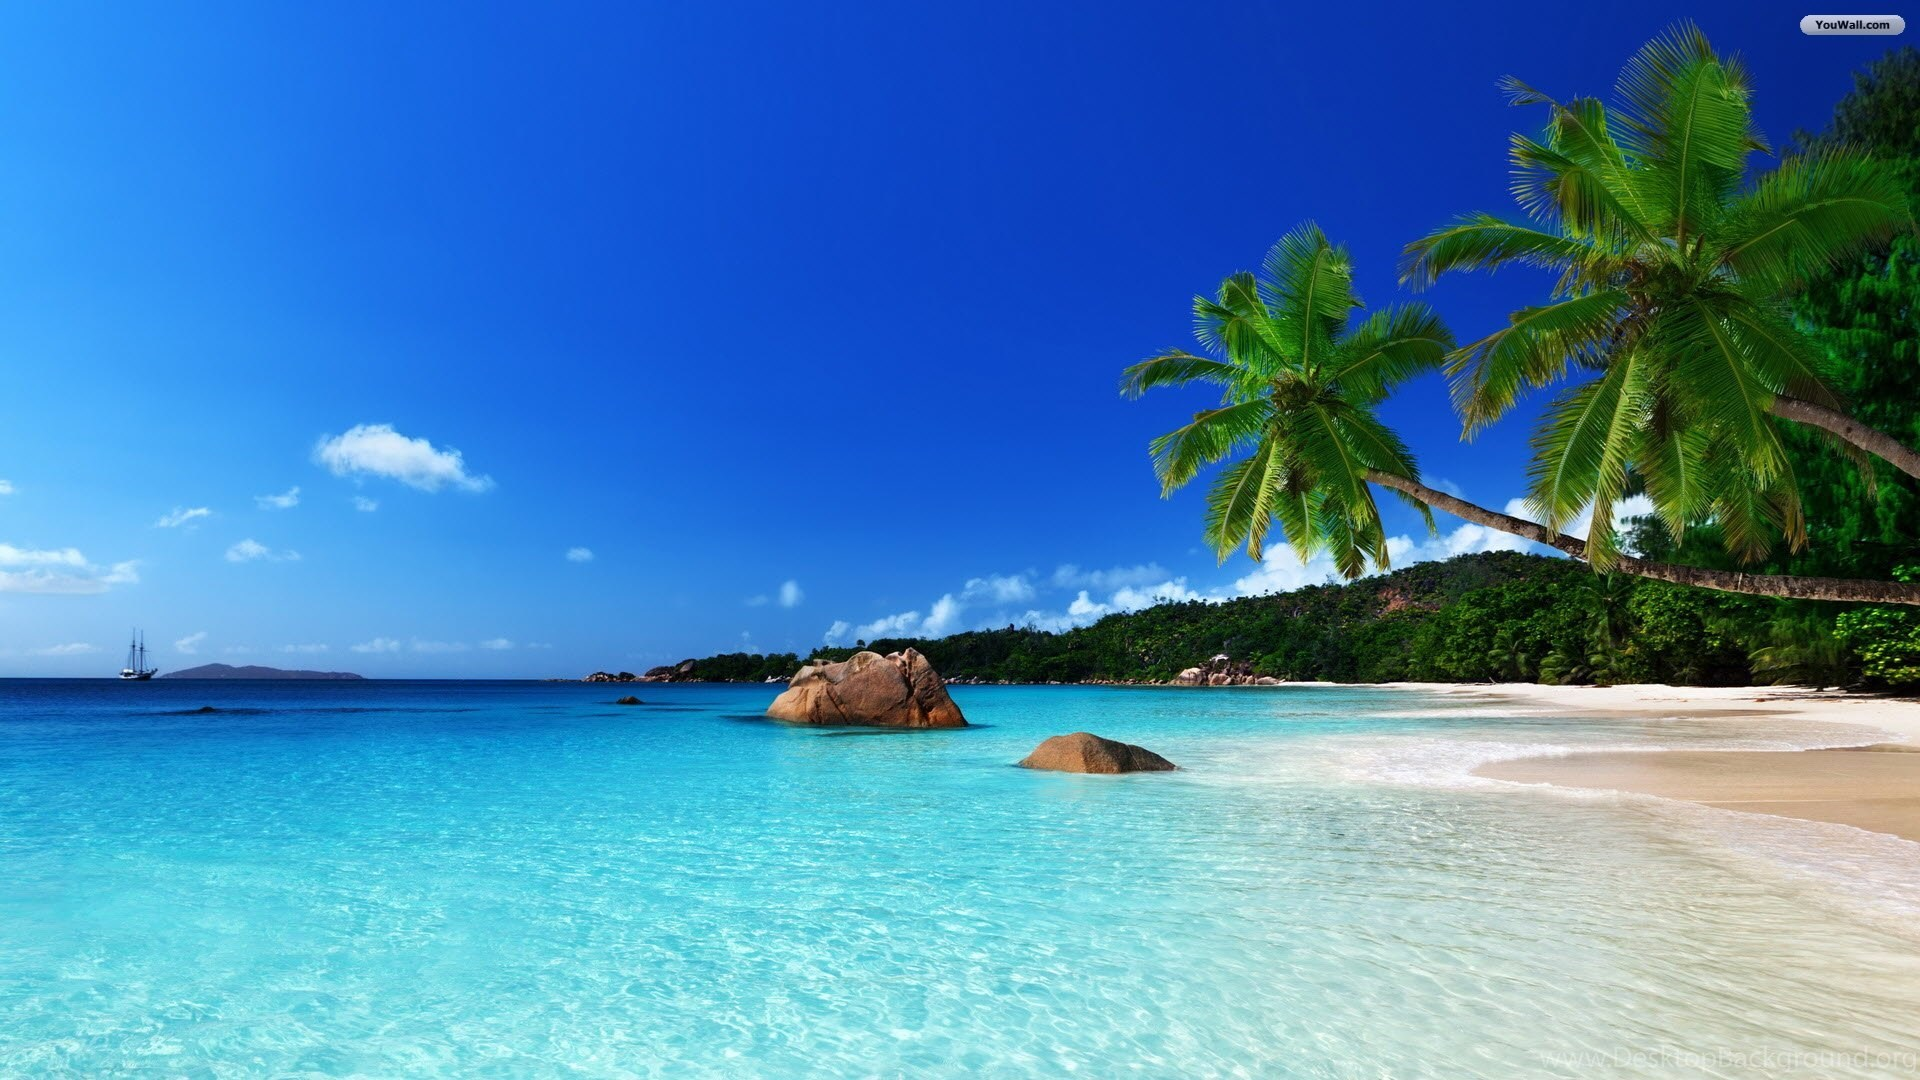 Beach Desktop Backgrounds 1920x1080 Best HD Desktop